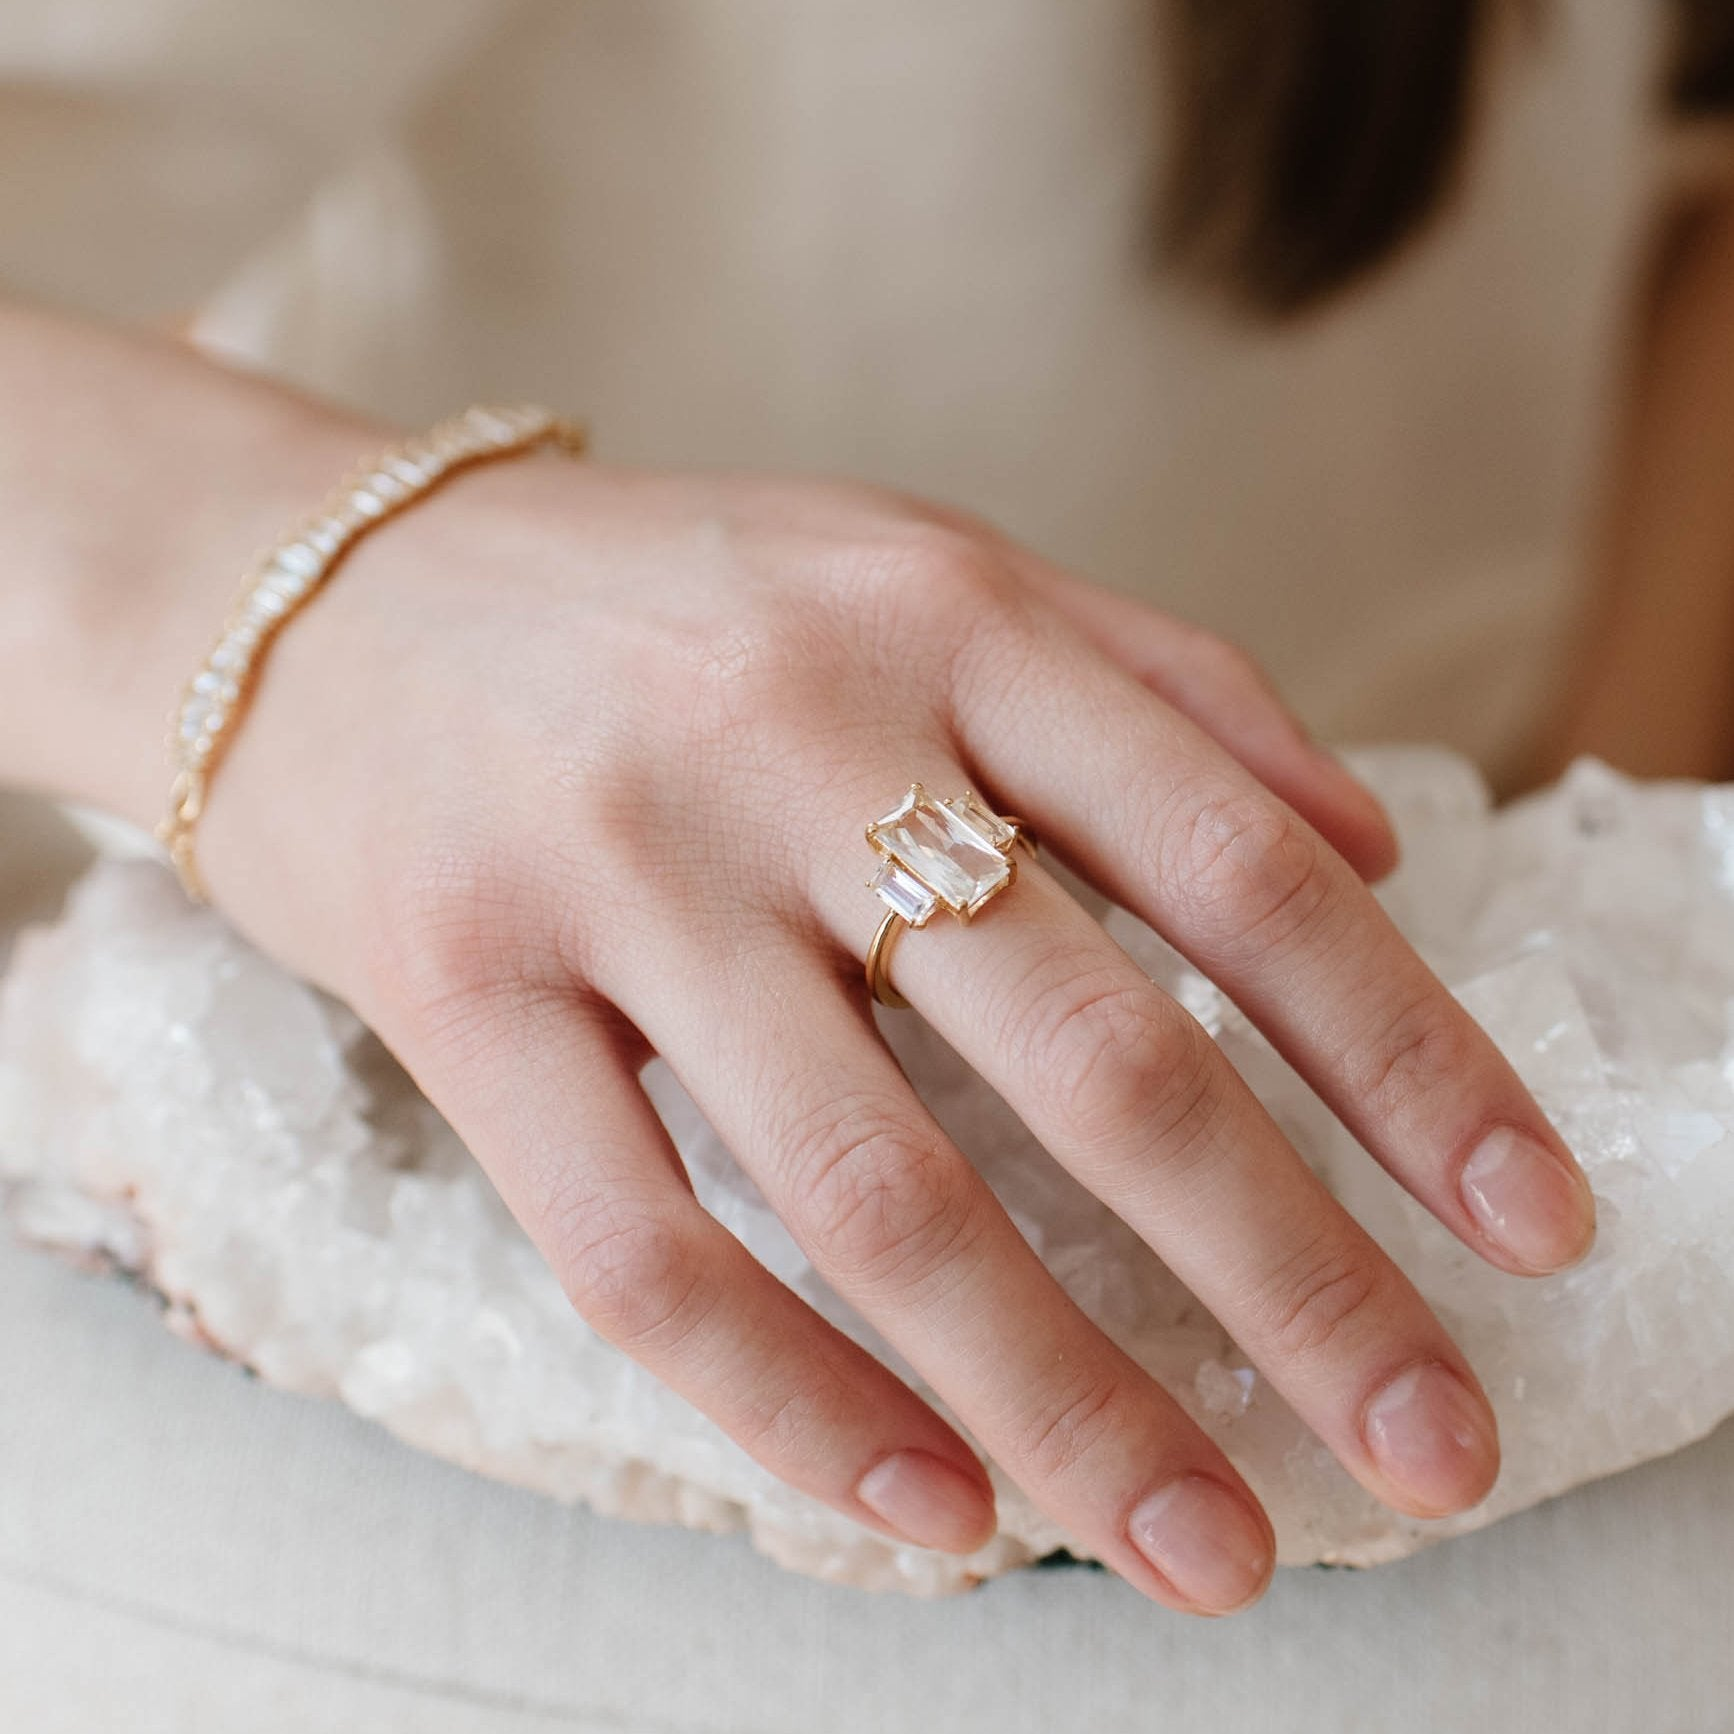 Loyal Cocktail Ring - White Topaz & Gold - SO PRETTY CARA COTTER